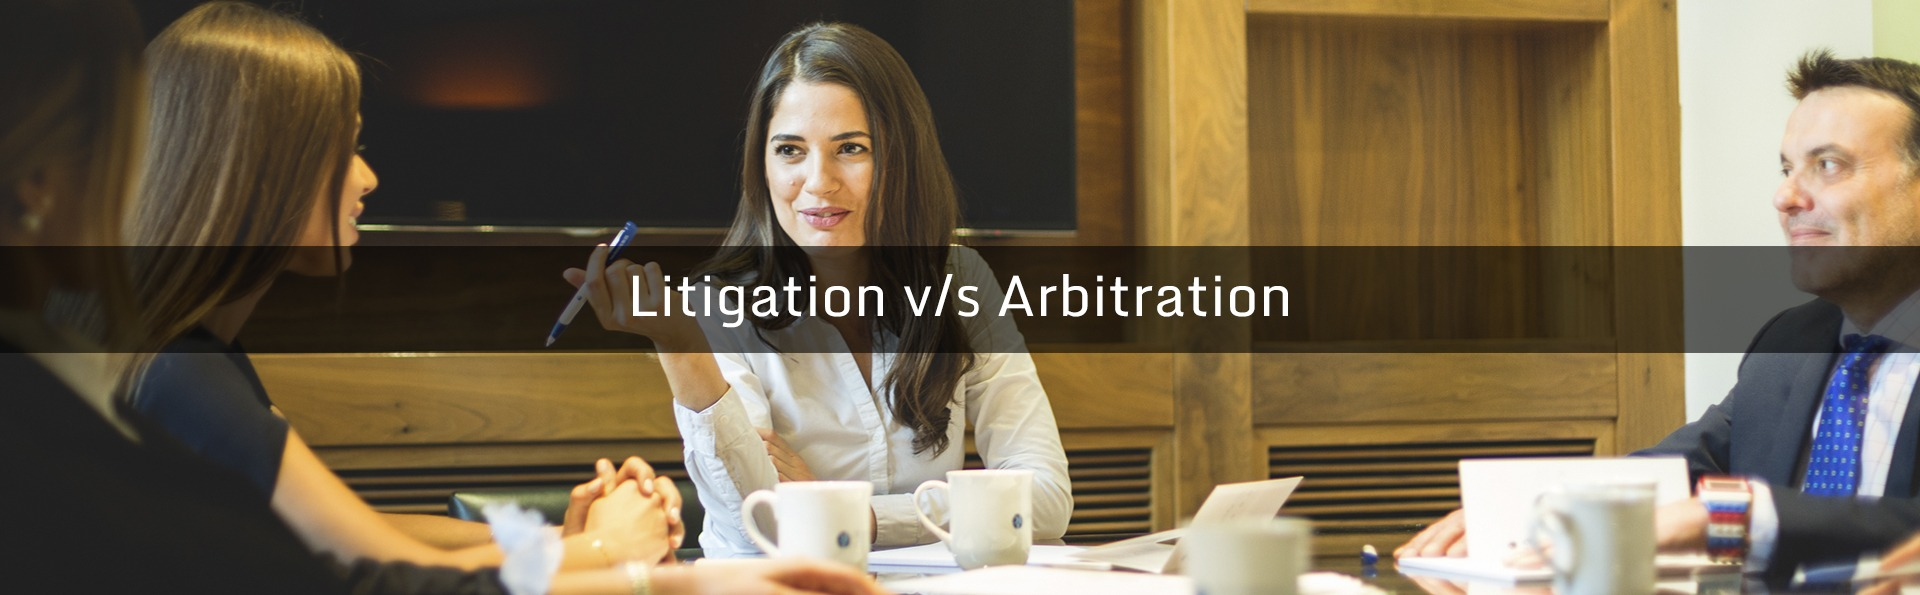 litigation arbitration bloomsbury law solicitors